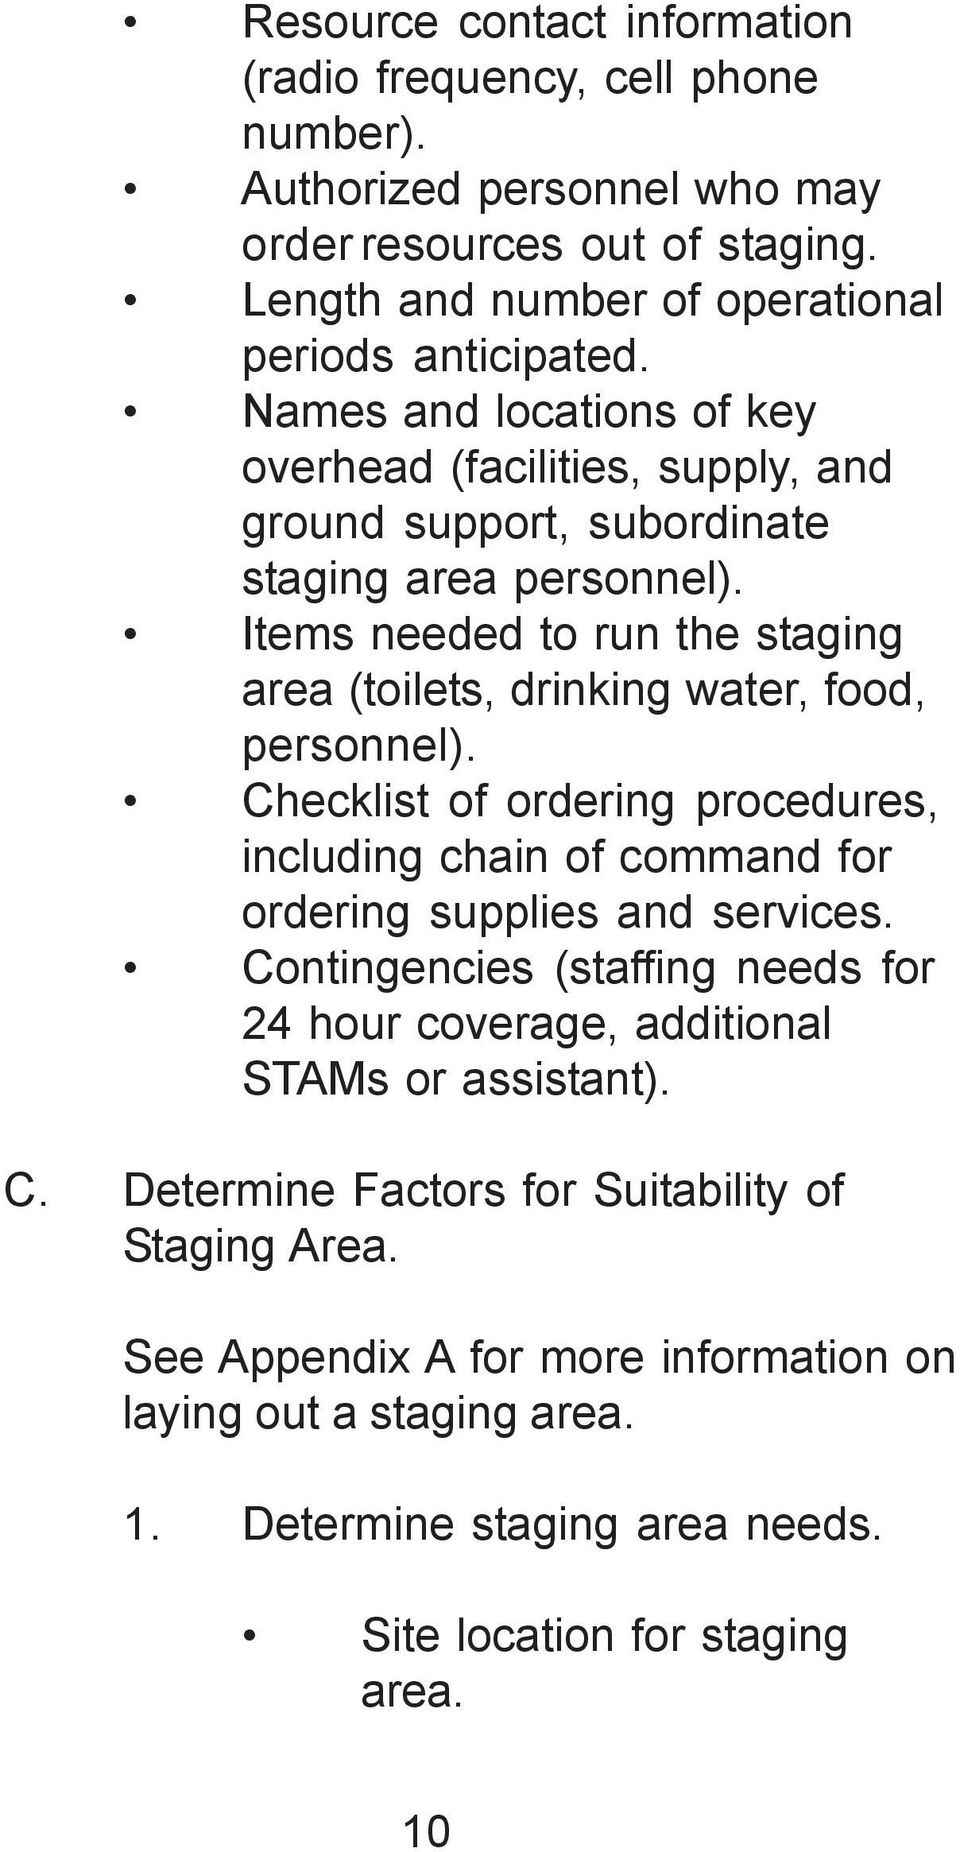 Items needed to run the staging area (toilets, drinking water, food, personnel). Checklist of ordering procedures, including chain of command for ordering supplies and services.